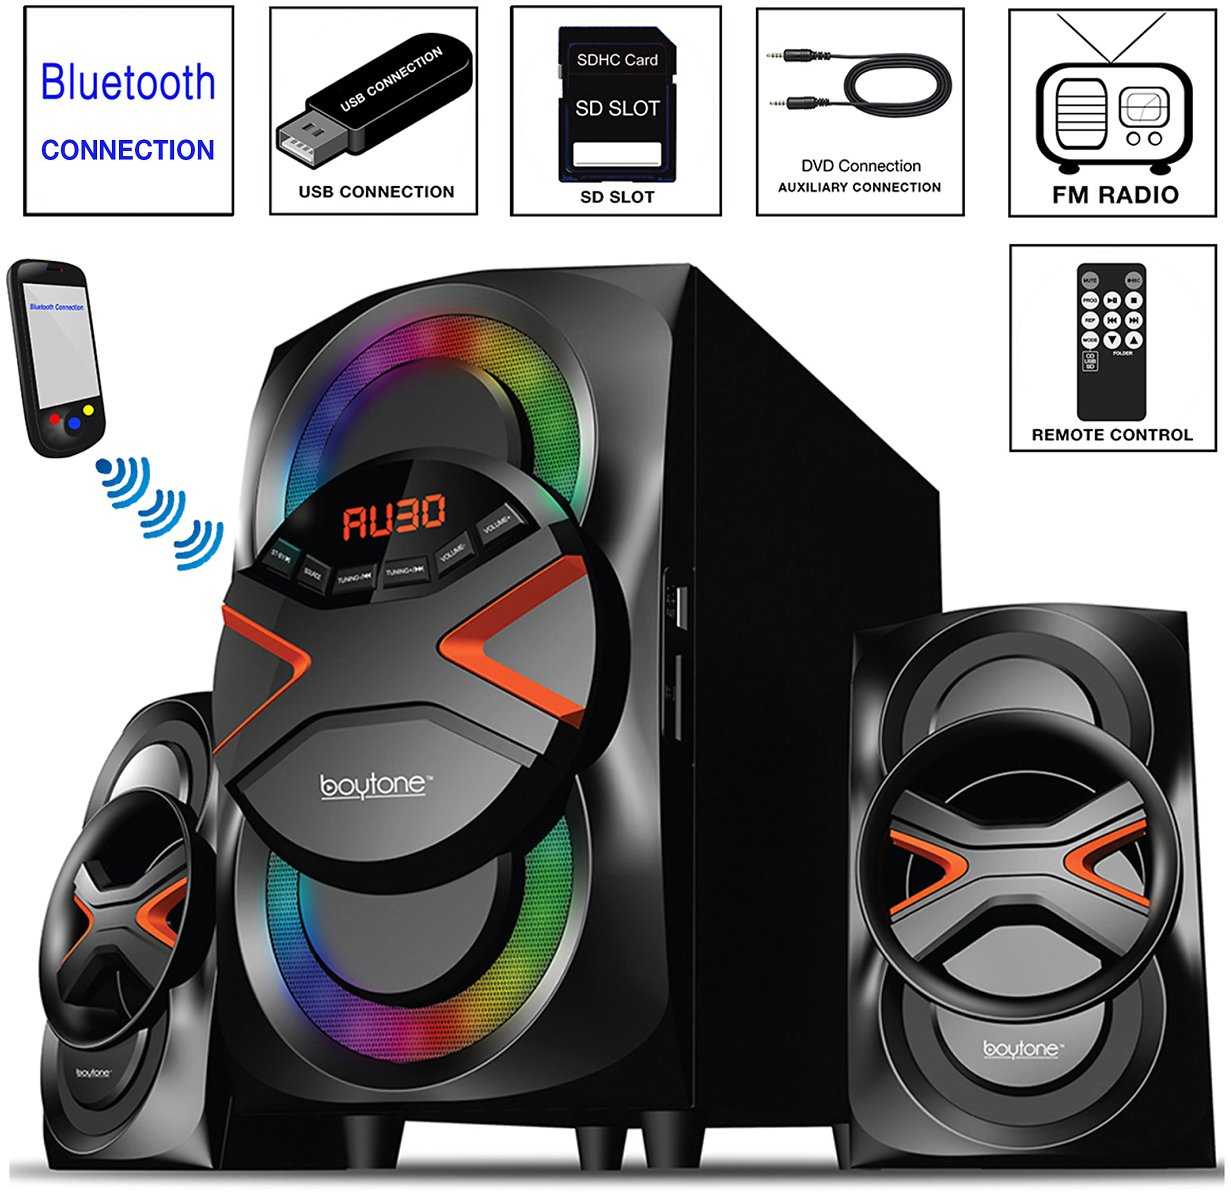 Boytone BT-626F, 2.1 Bluetooth Powerful Home Audio Speaker System